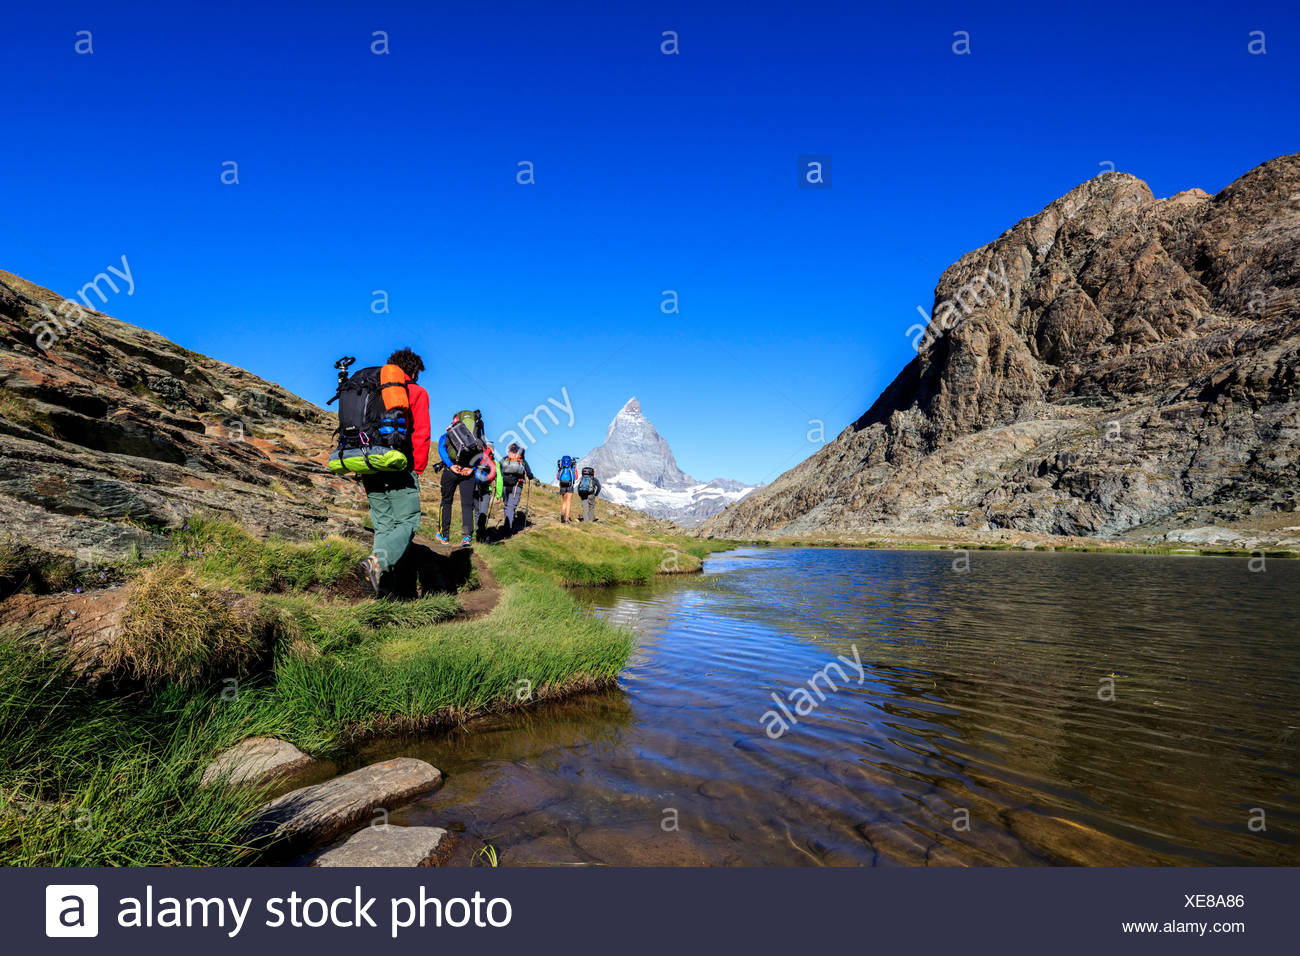 Hikers proceed on the shore of Lake Riffelsee with Matterhorn in the background Zermatt Canton of Valais Switzerland Europe - Stock Image